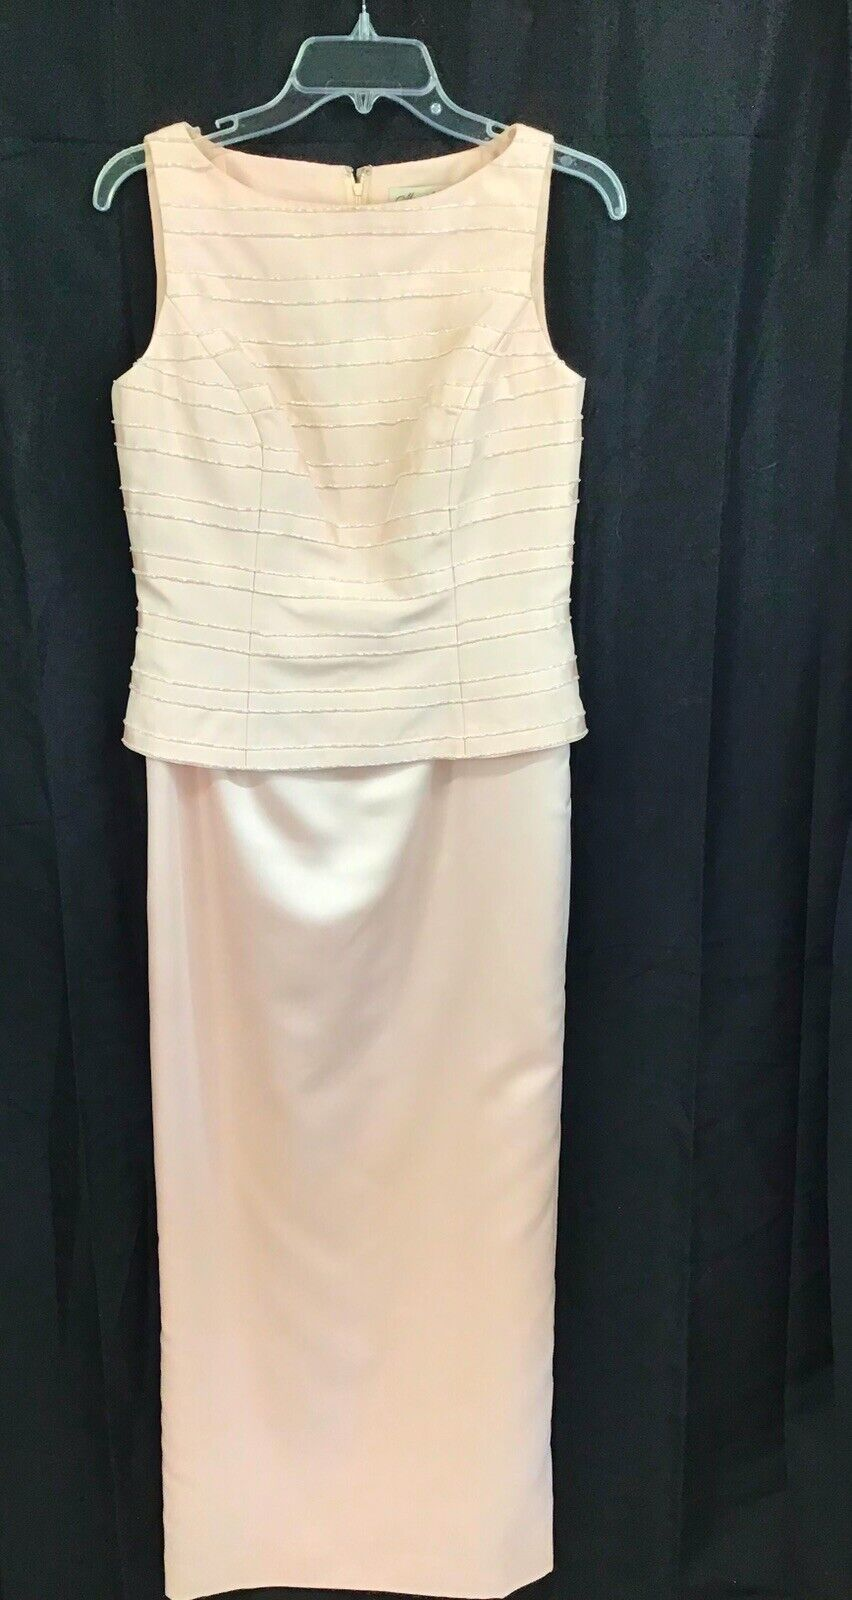 VINTAGE COUTURE MARIE ST. CLAIRE PINK BEADED TRIM… - image 7